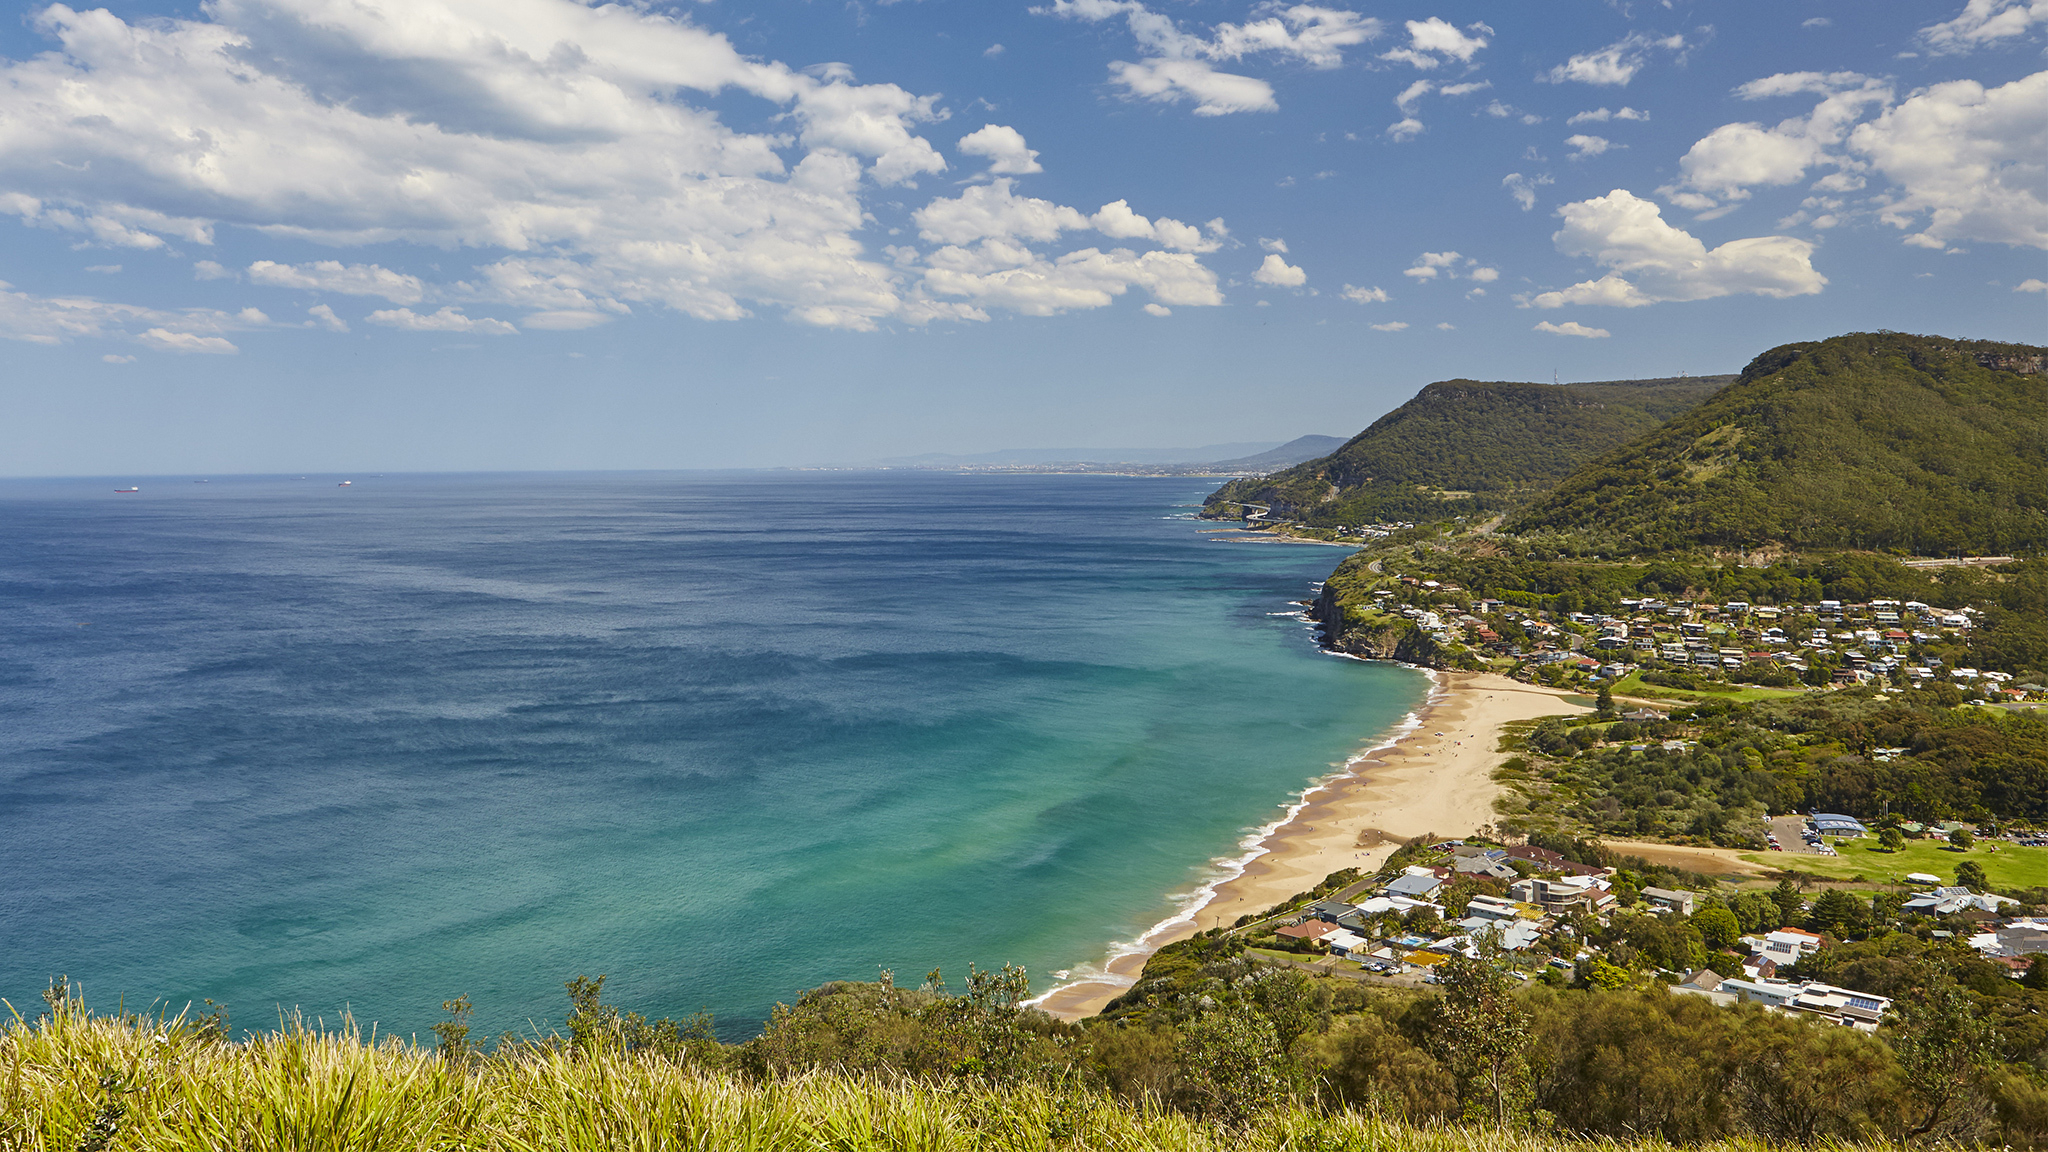 View from Stanwell Tops lookout in the Royal National Park.